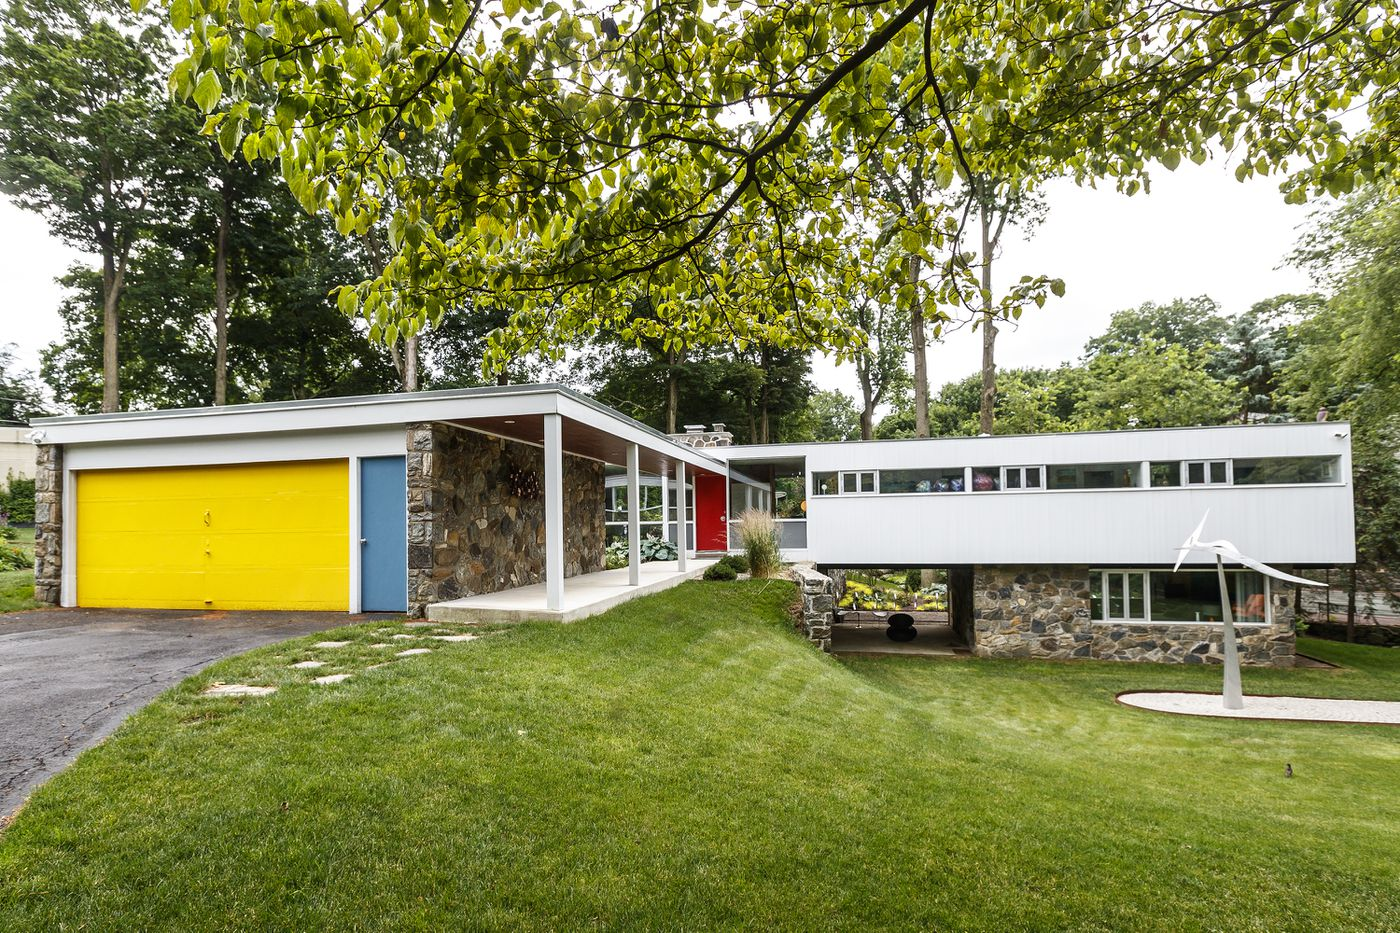 Landscaping creates a bucolic setting for a mid-century ...